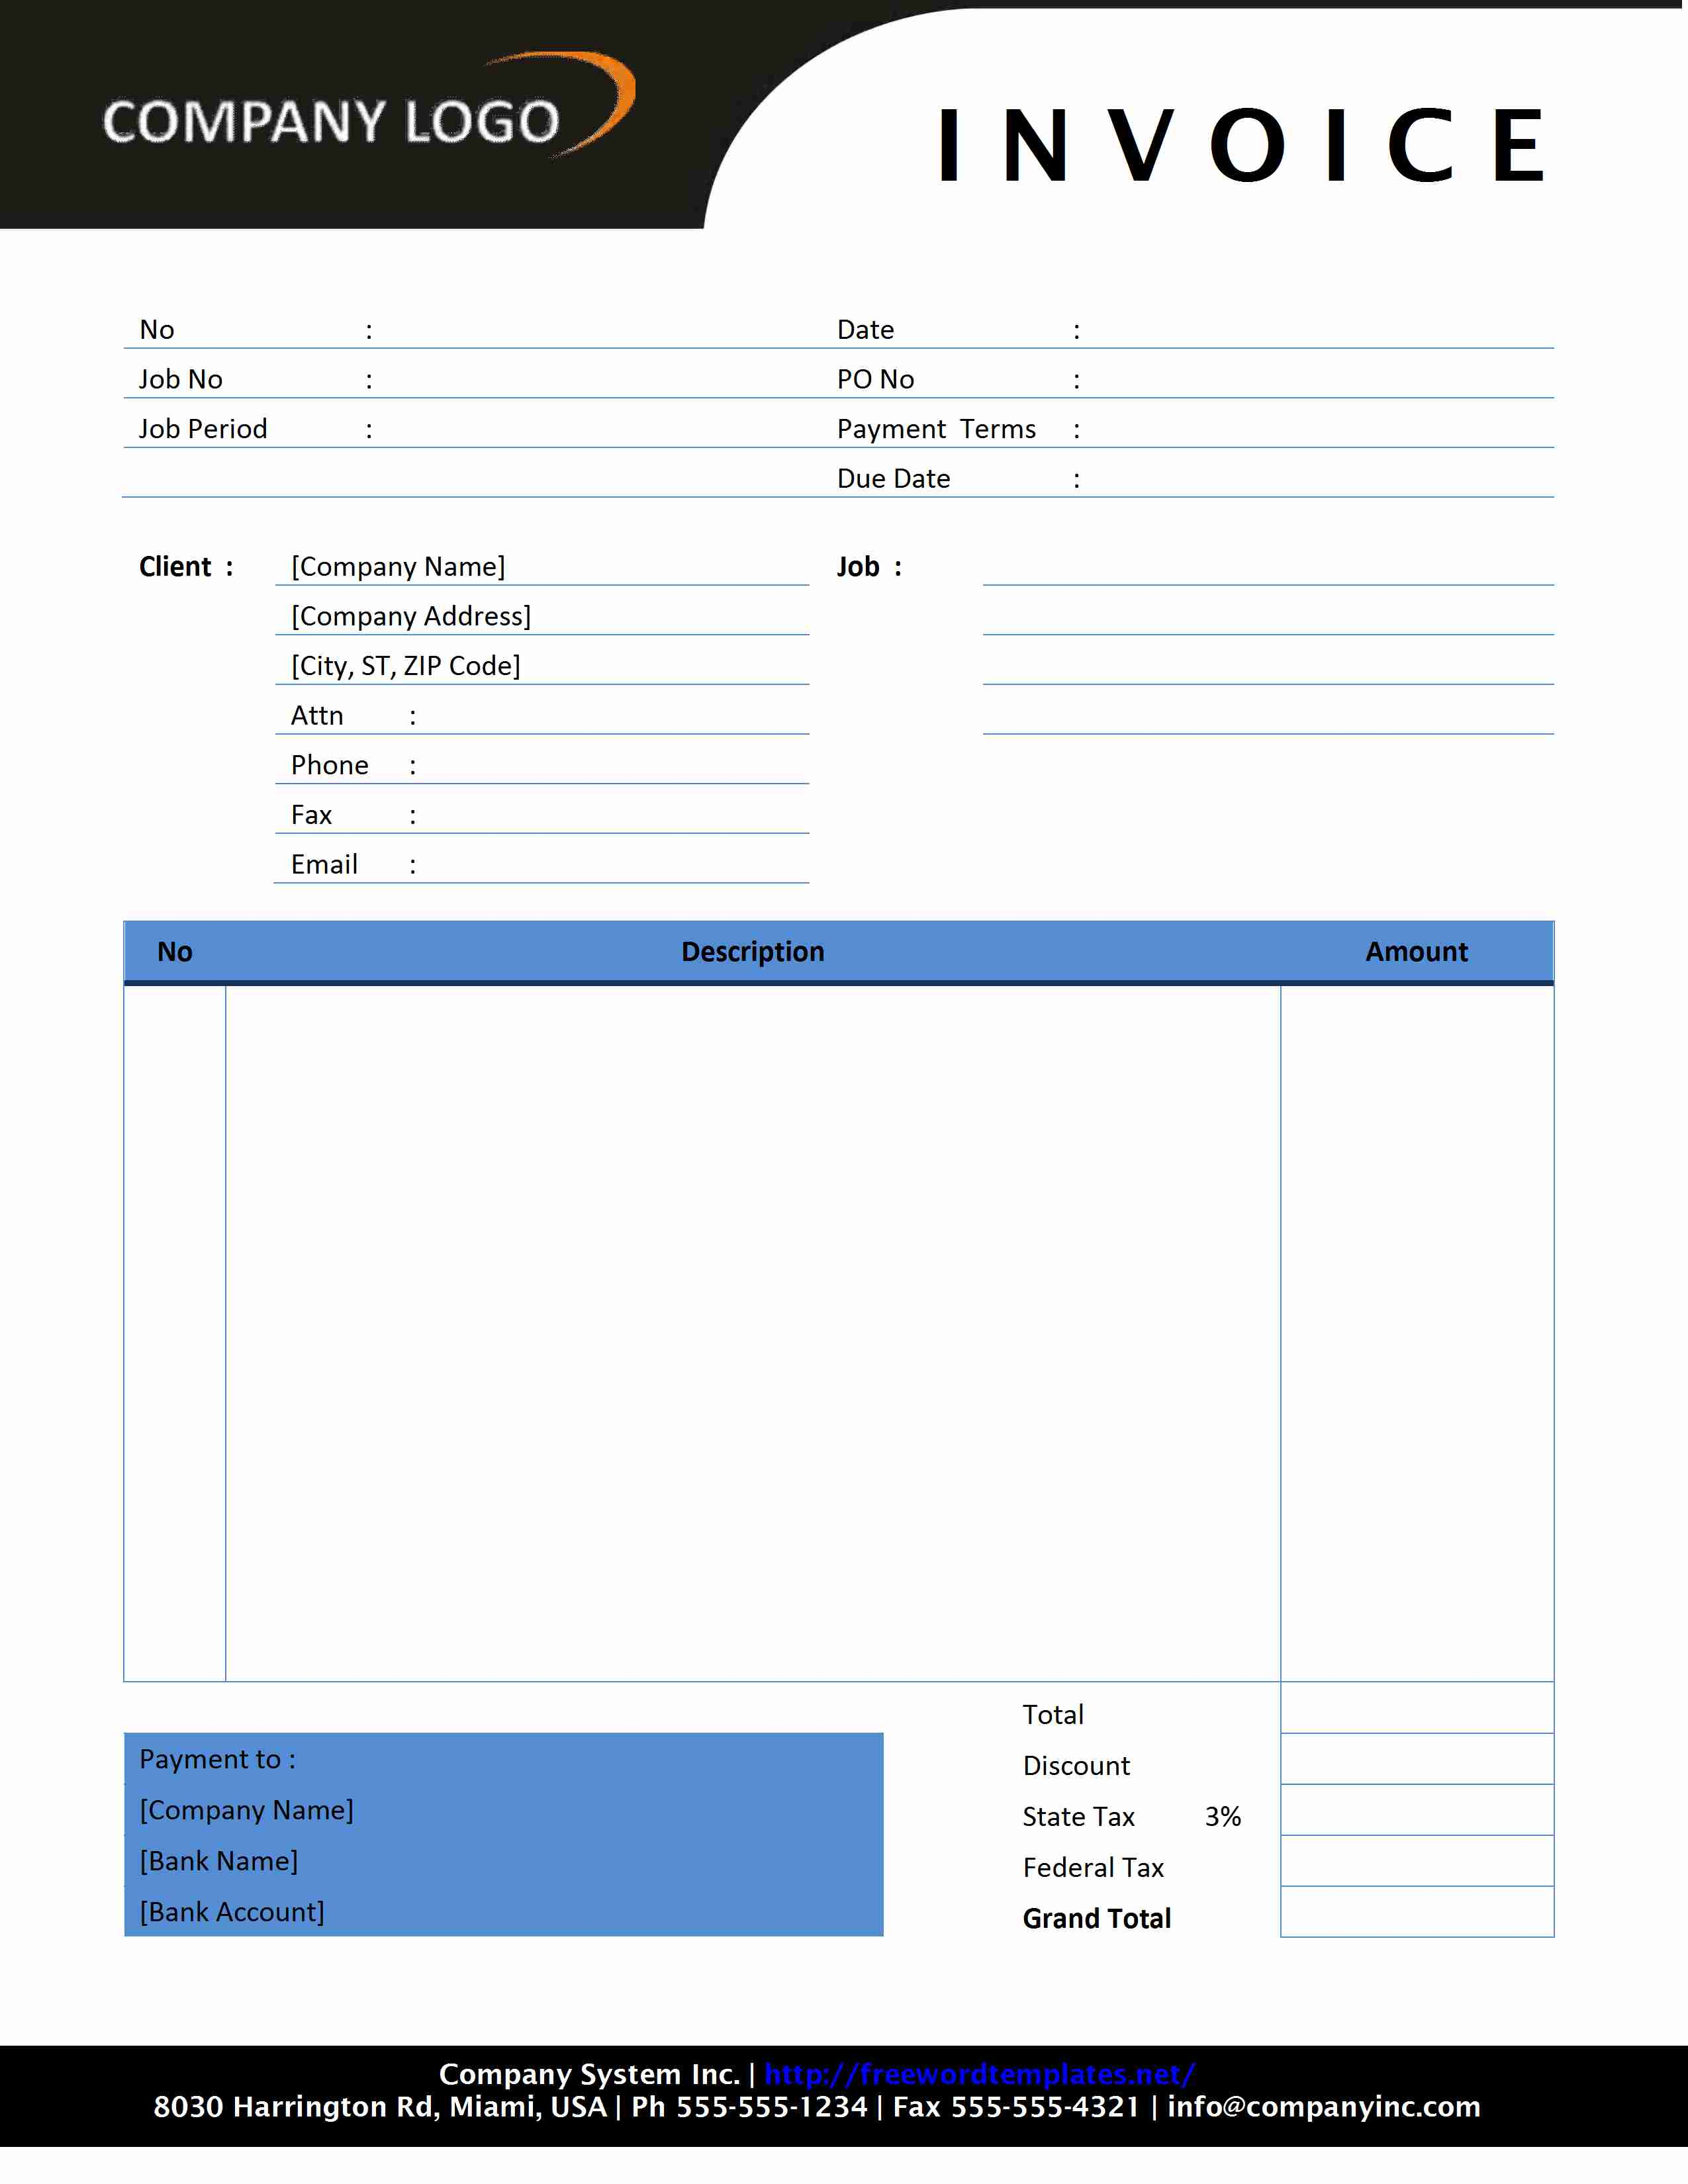 Photography Invoice - Free printable service invoices for service business